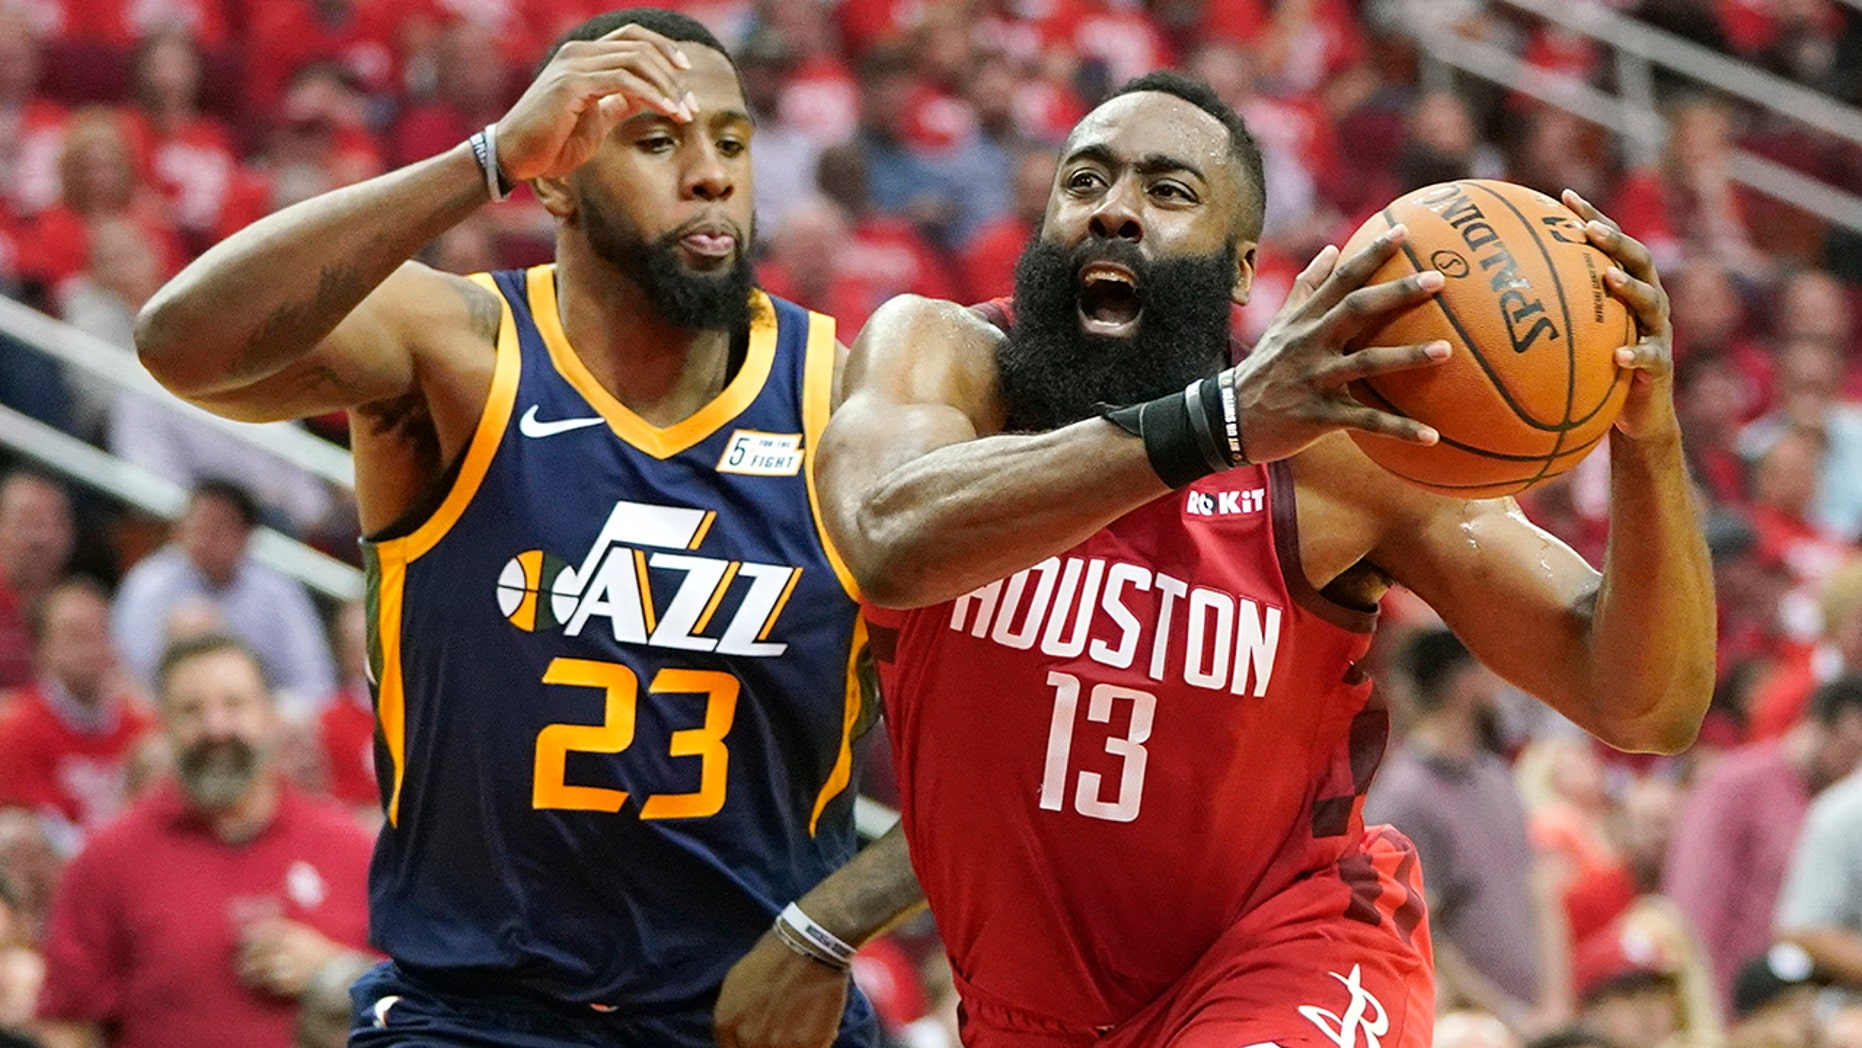 65985a5b6e60 Houston Rockets guard James Harden (13) drives against Utah Jazz forward  Royce O